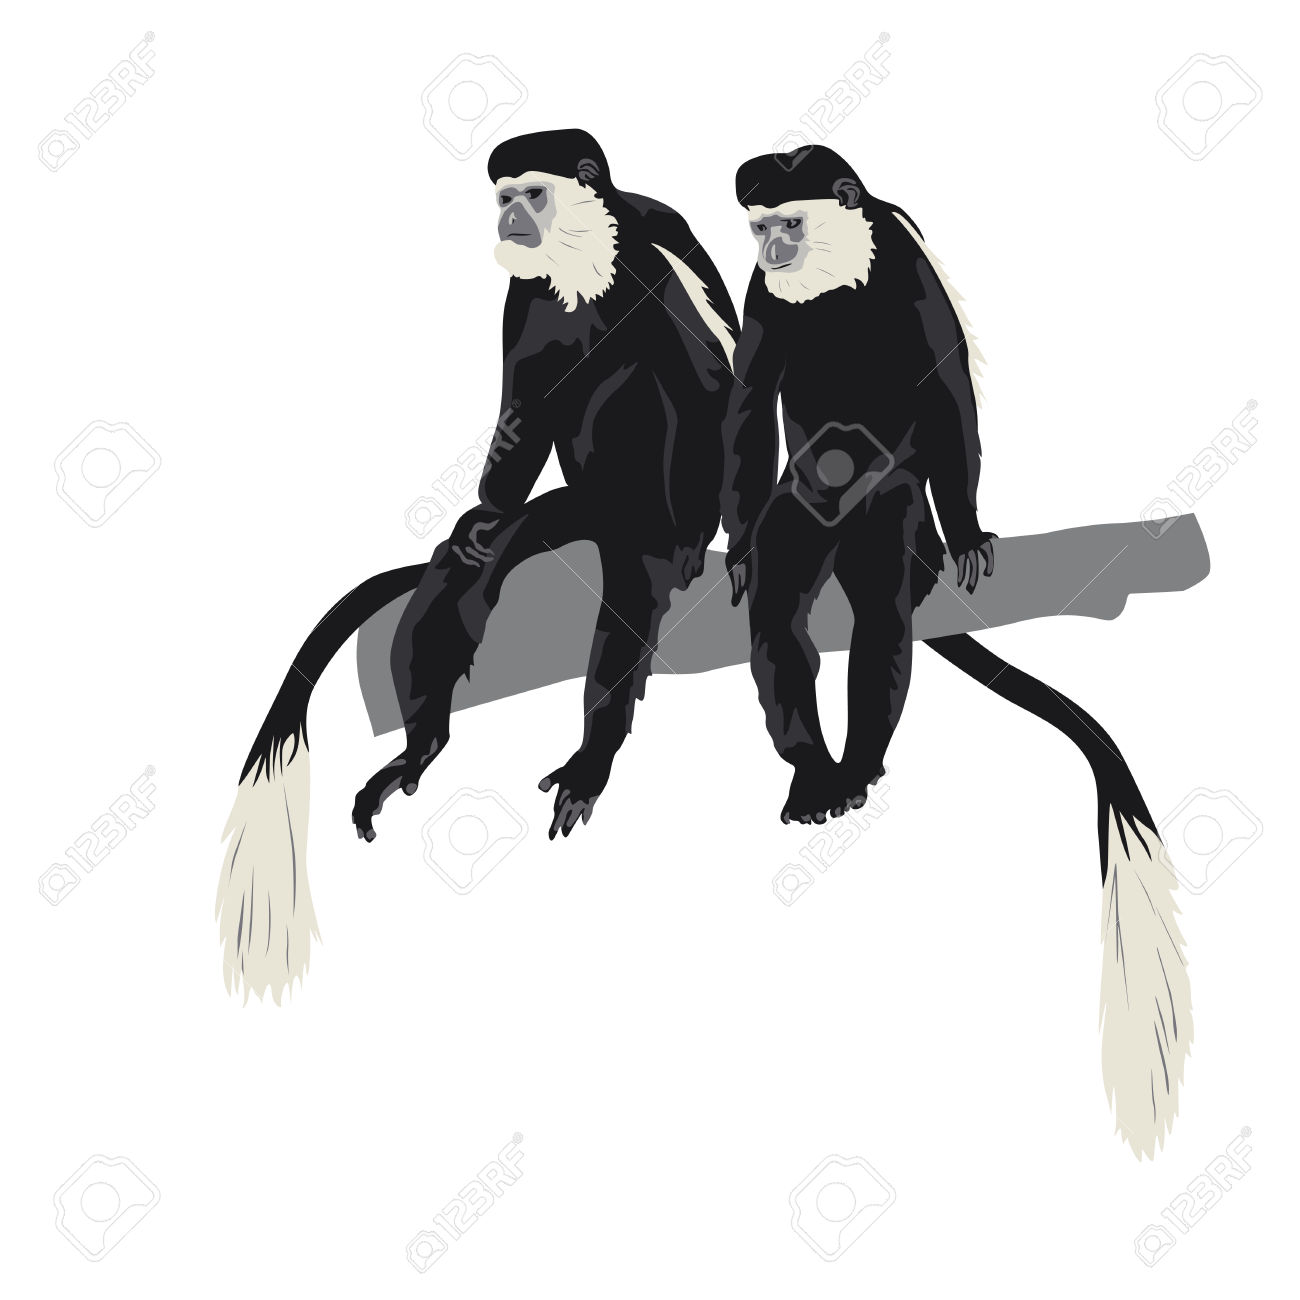 Colobus Monkey  clipart #14, Download drawings